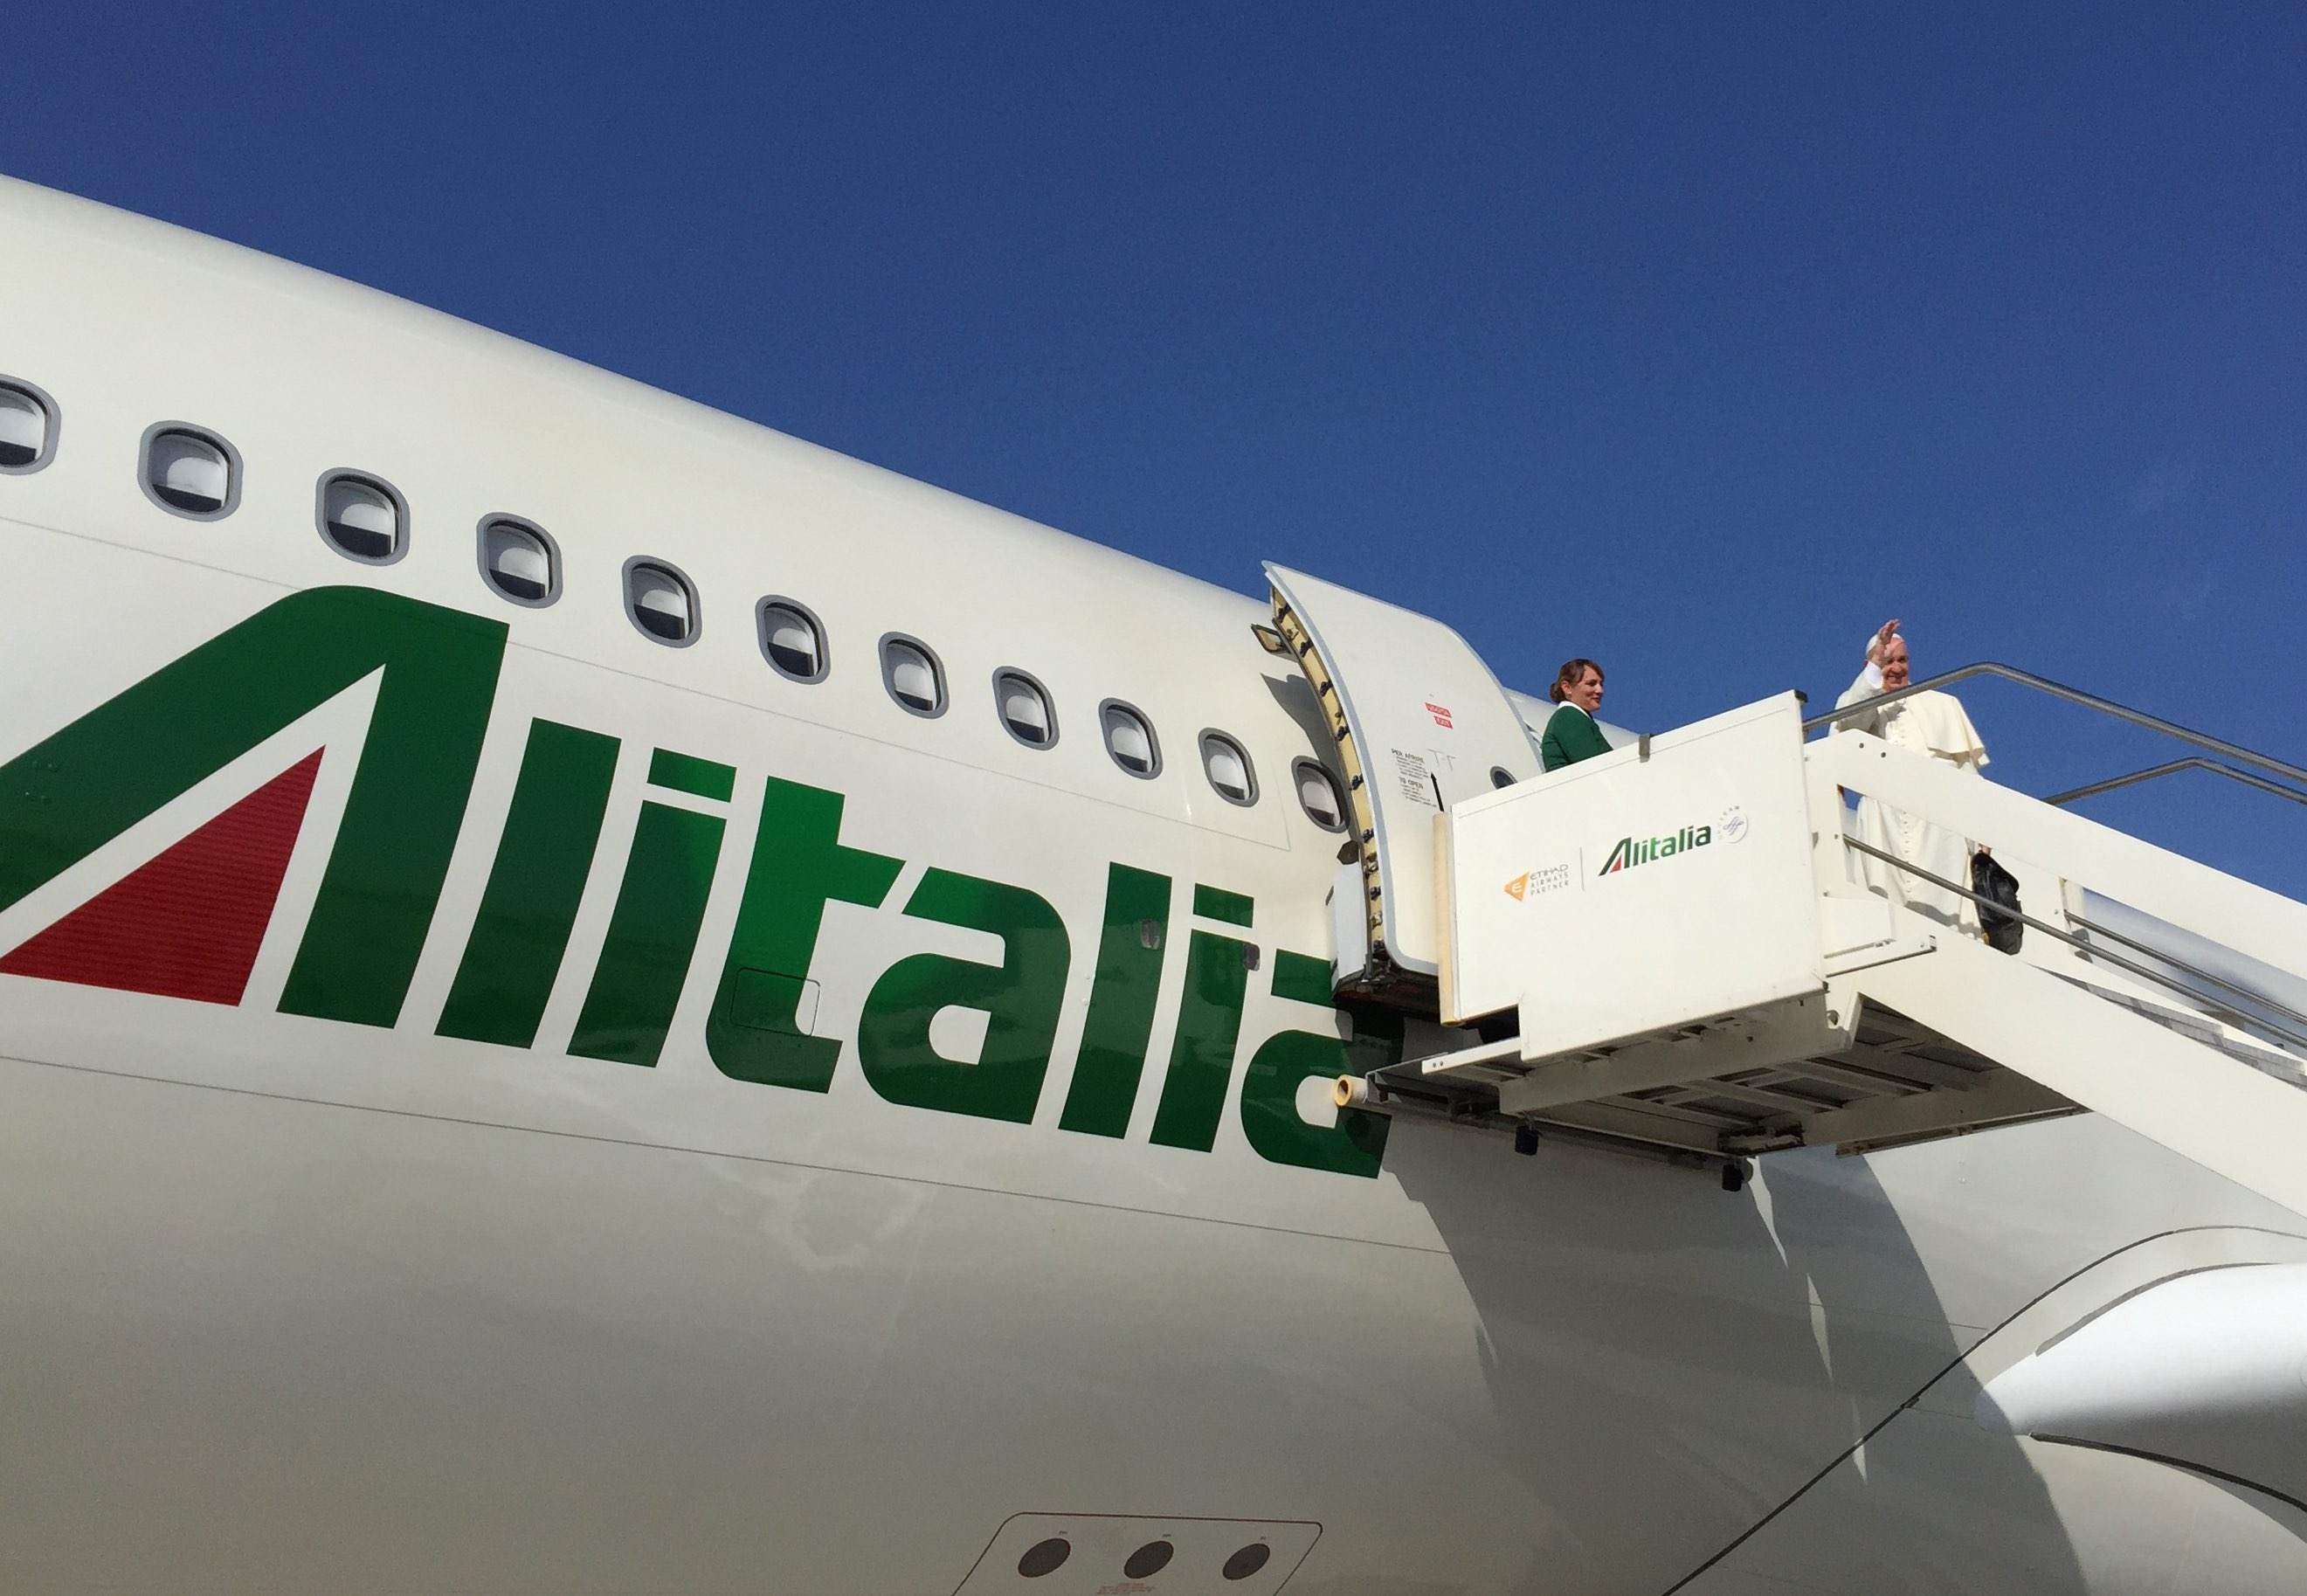 Four Alitalia pilots on duty on this flight Paolo La Cava Flight Operations Post Holder 46 years old from Milan married with two children